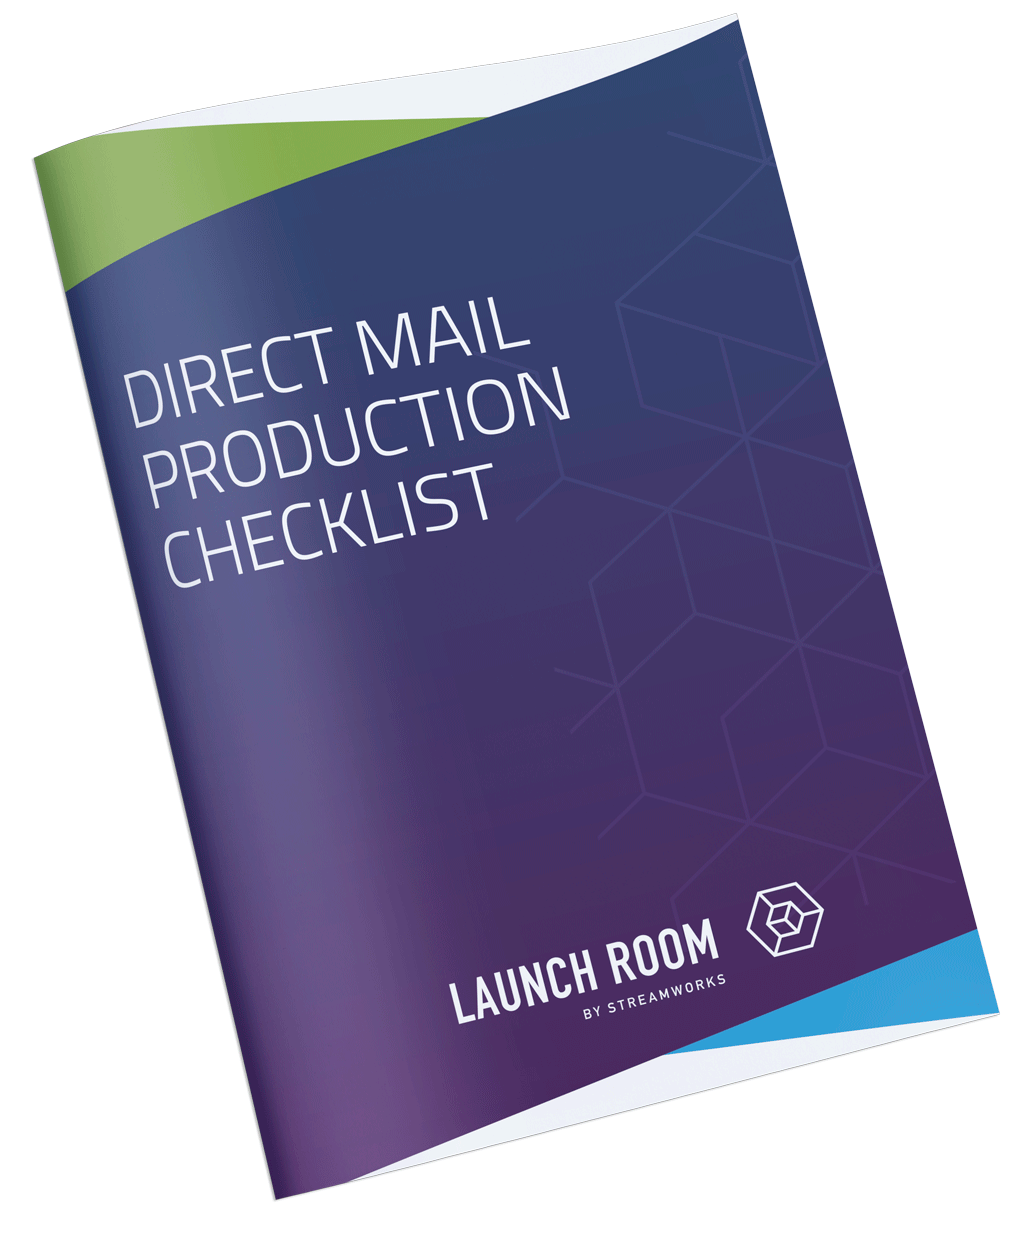 Direct Mail Production Checklist